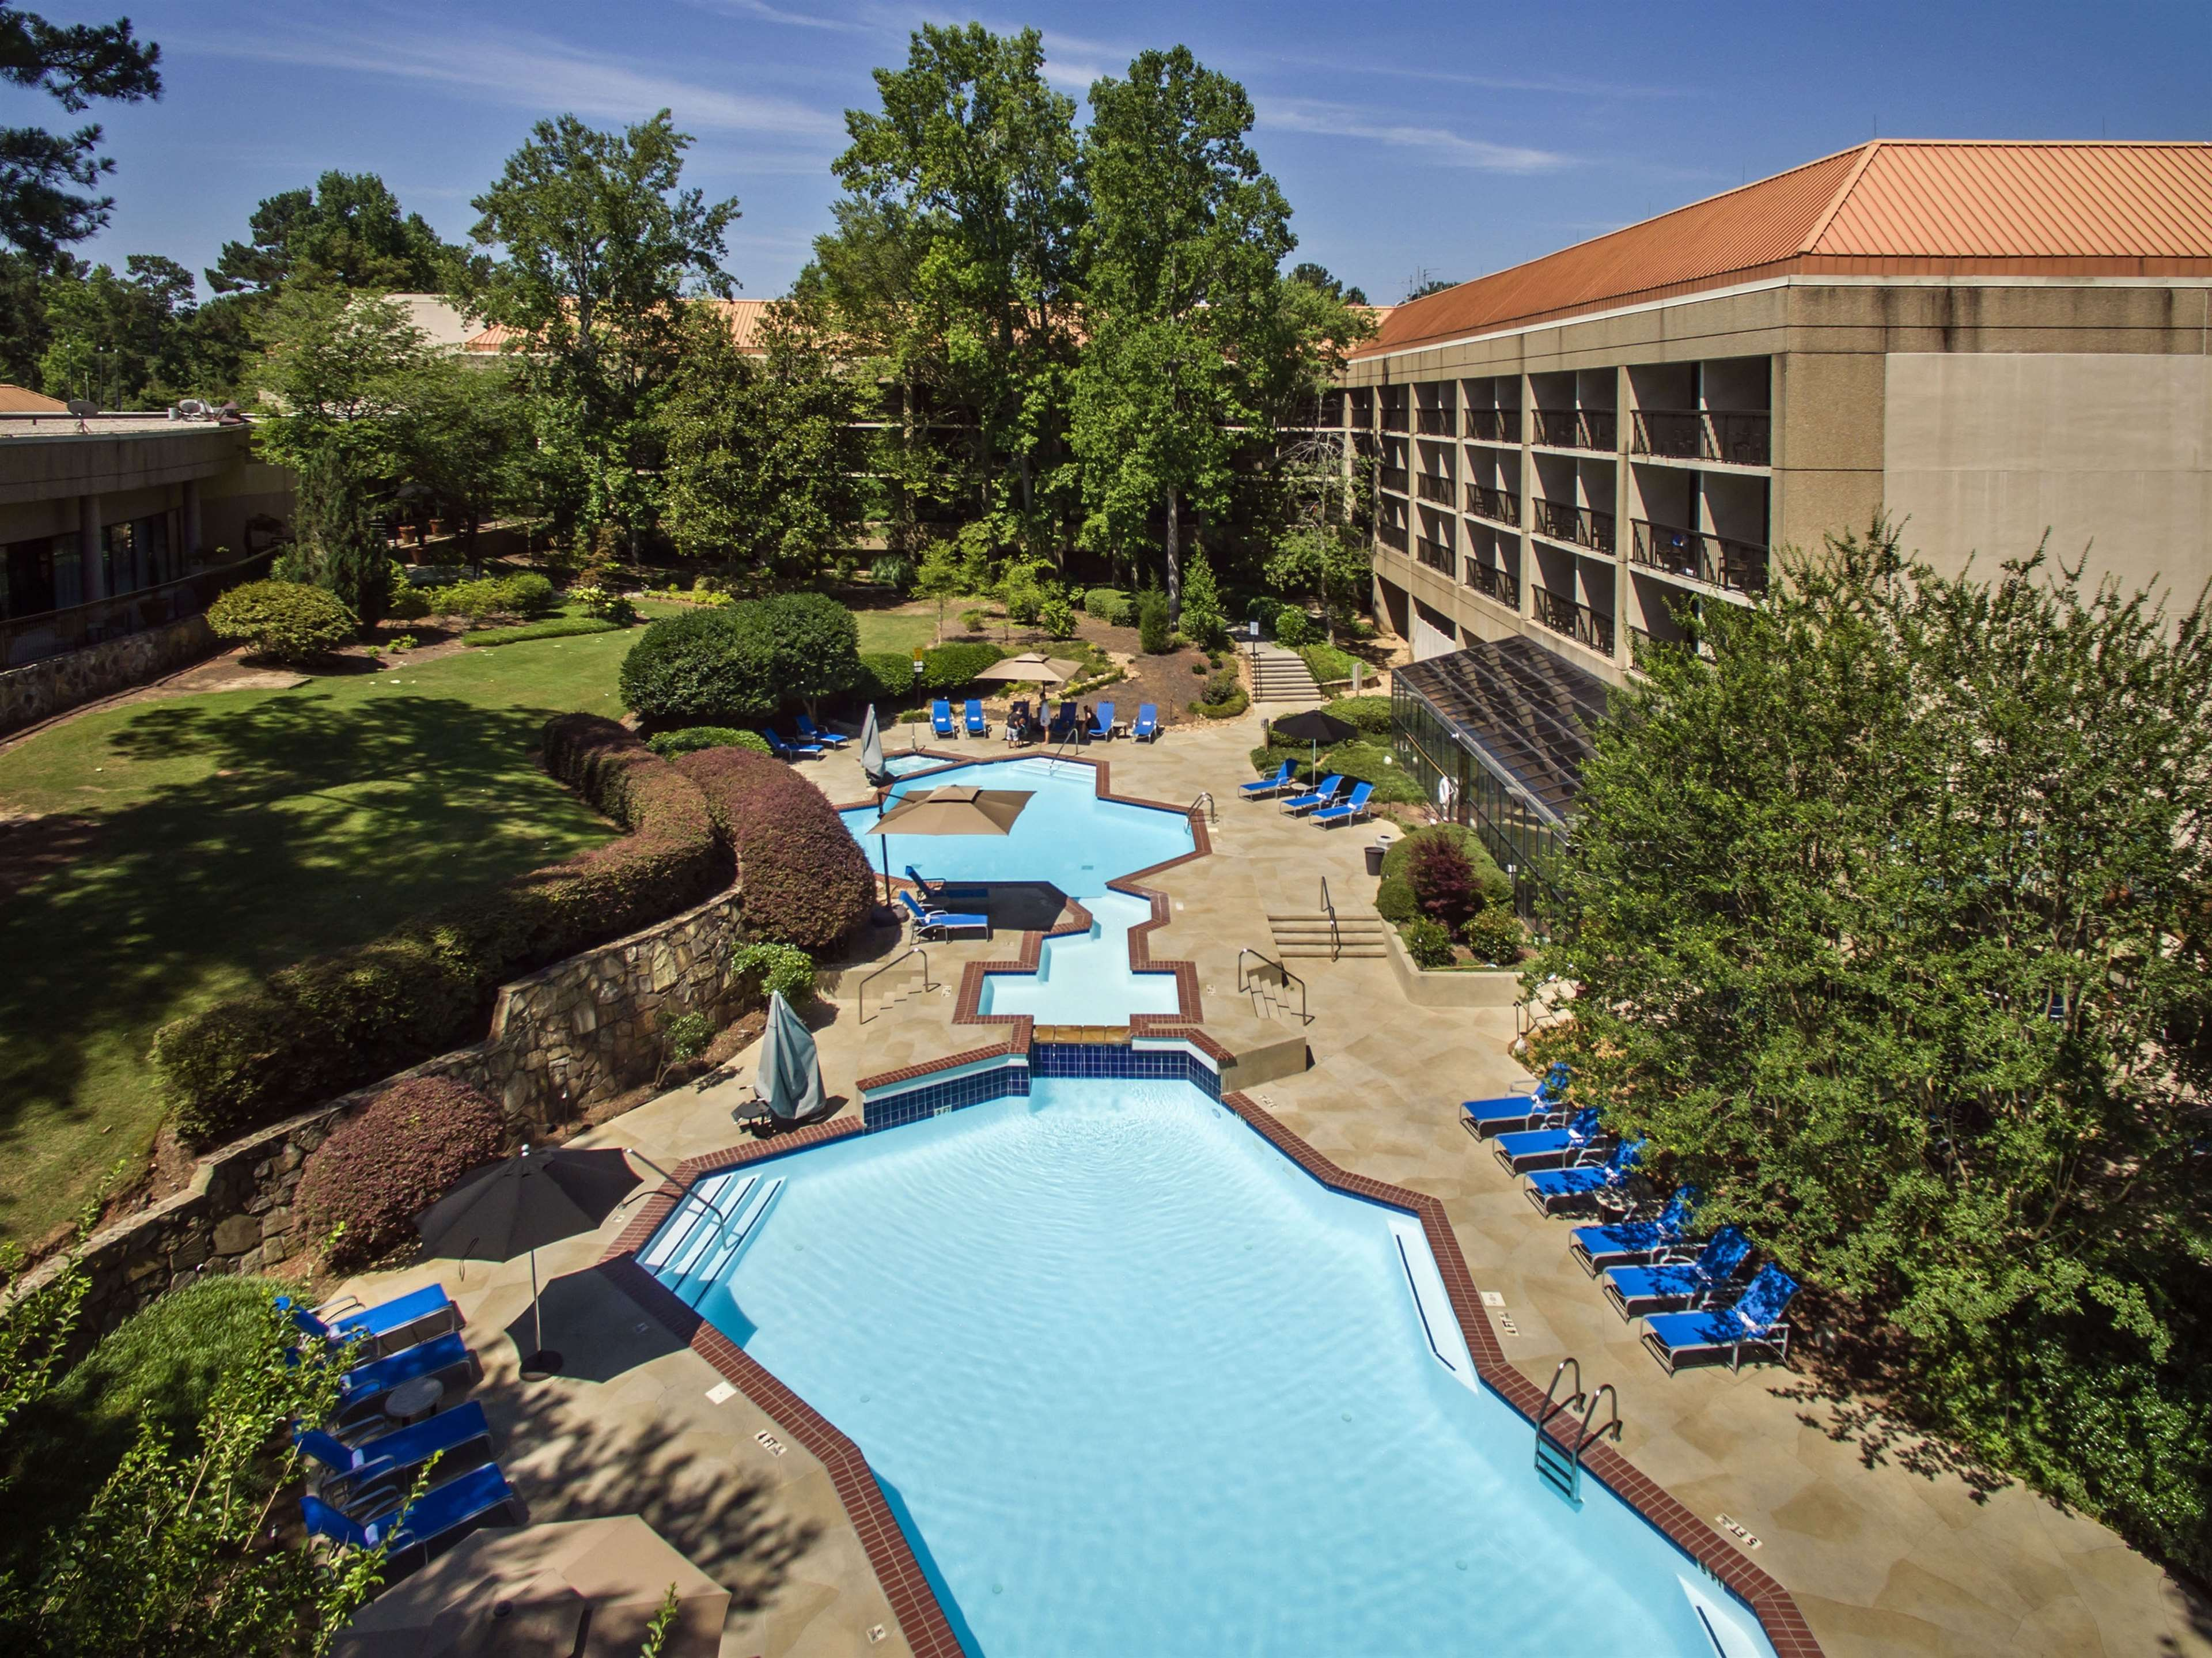 Peachtree City Hotel & Conference Center image 1